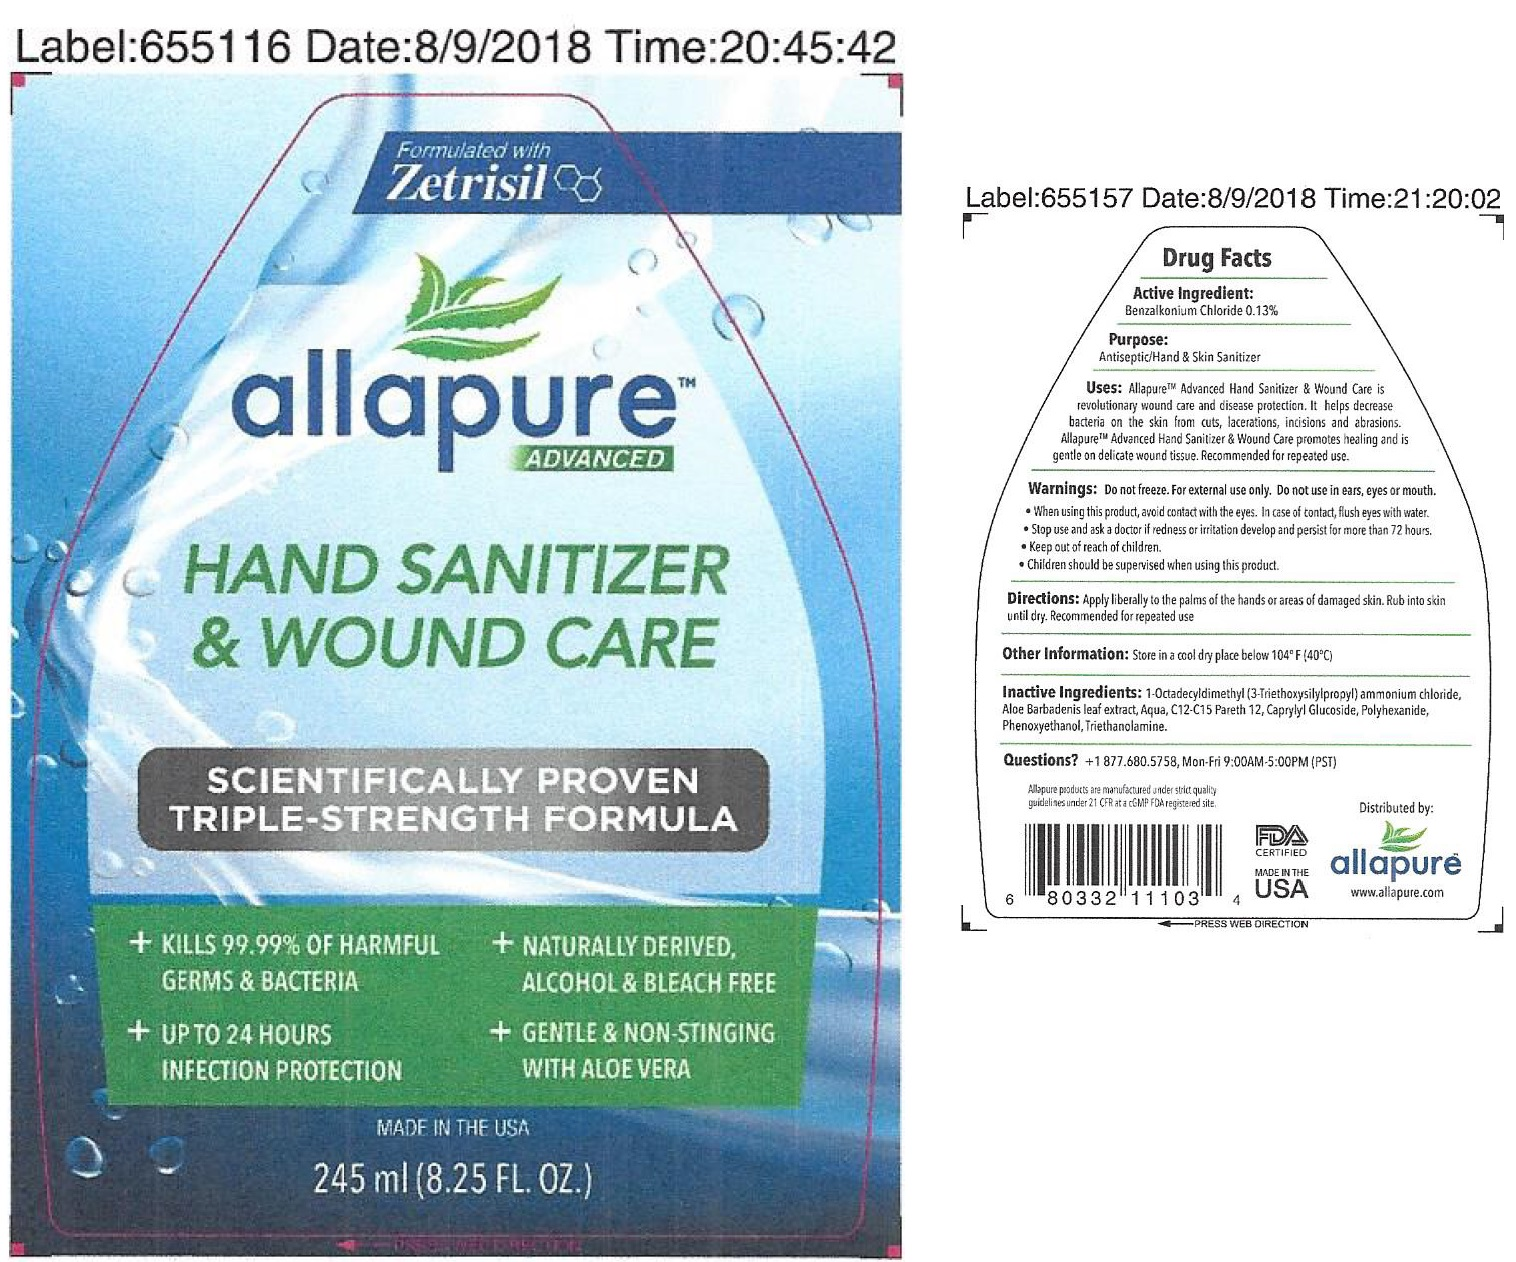 Allapure Advanced Formula Hand Sanitizer